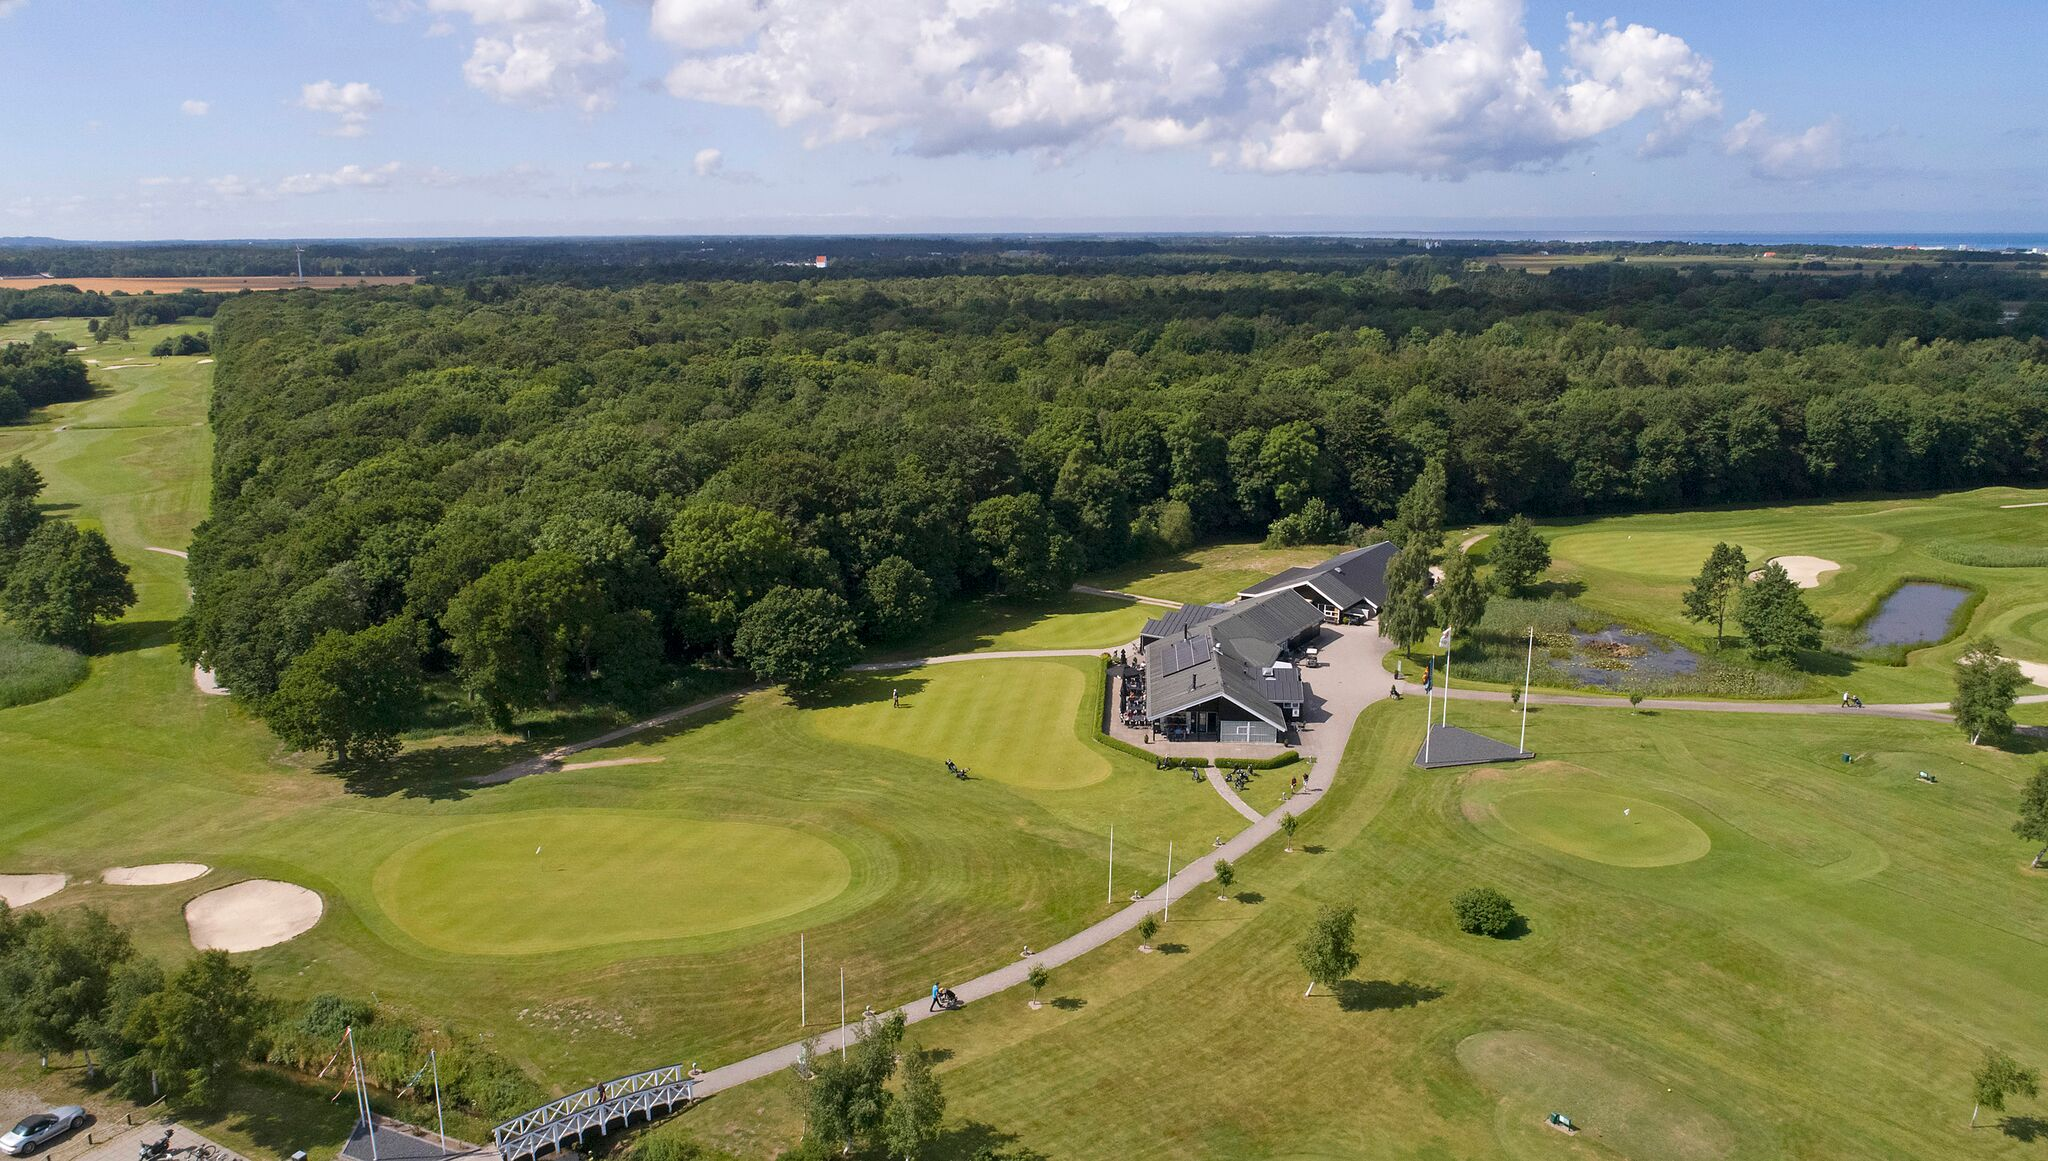 Top golf course Danmark